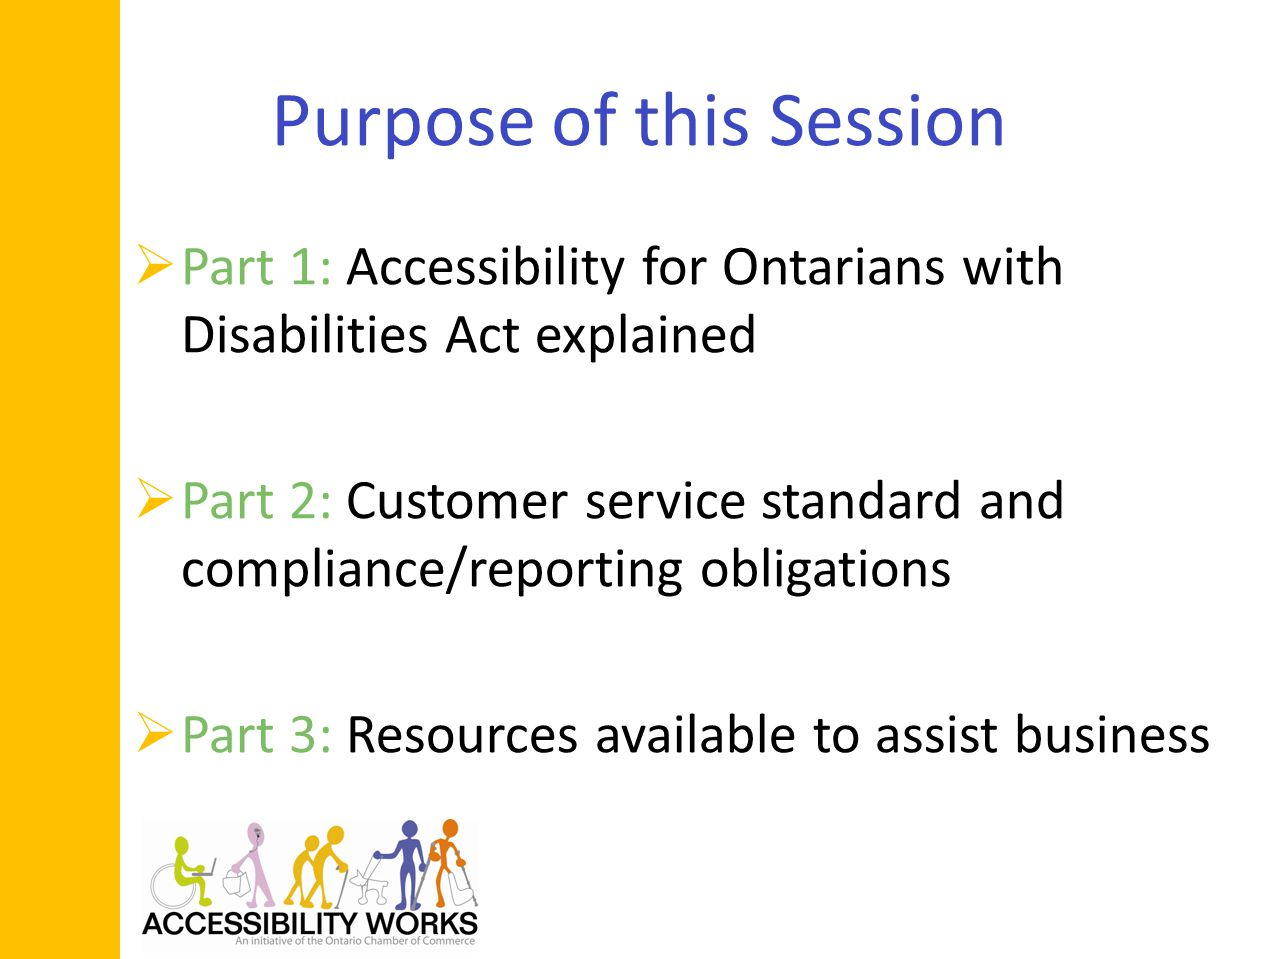 Purpose of this Session Part 1: Accessibility for Ontarians with Disabilities Act explained Part 2: Customer service standard and compliance/reporting obligations Part 3: Resources available to assist business